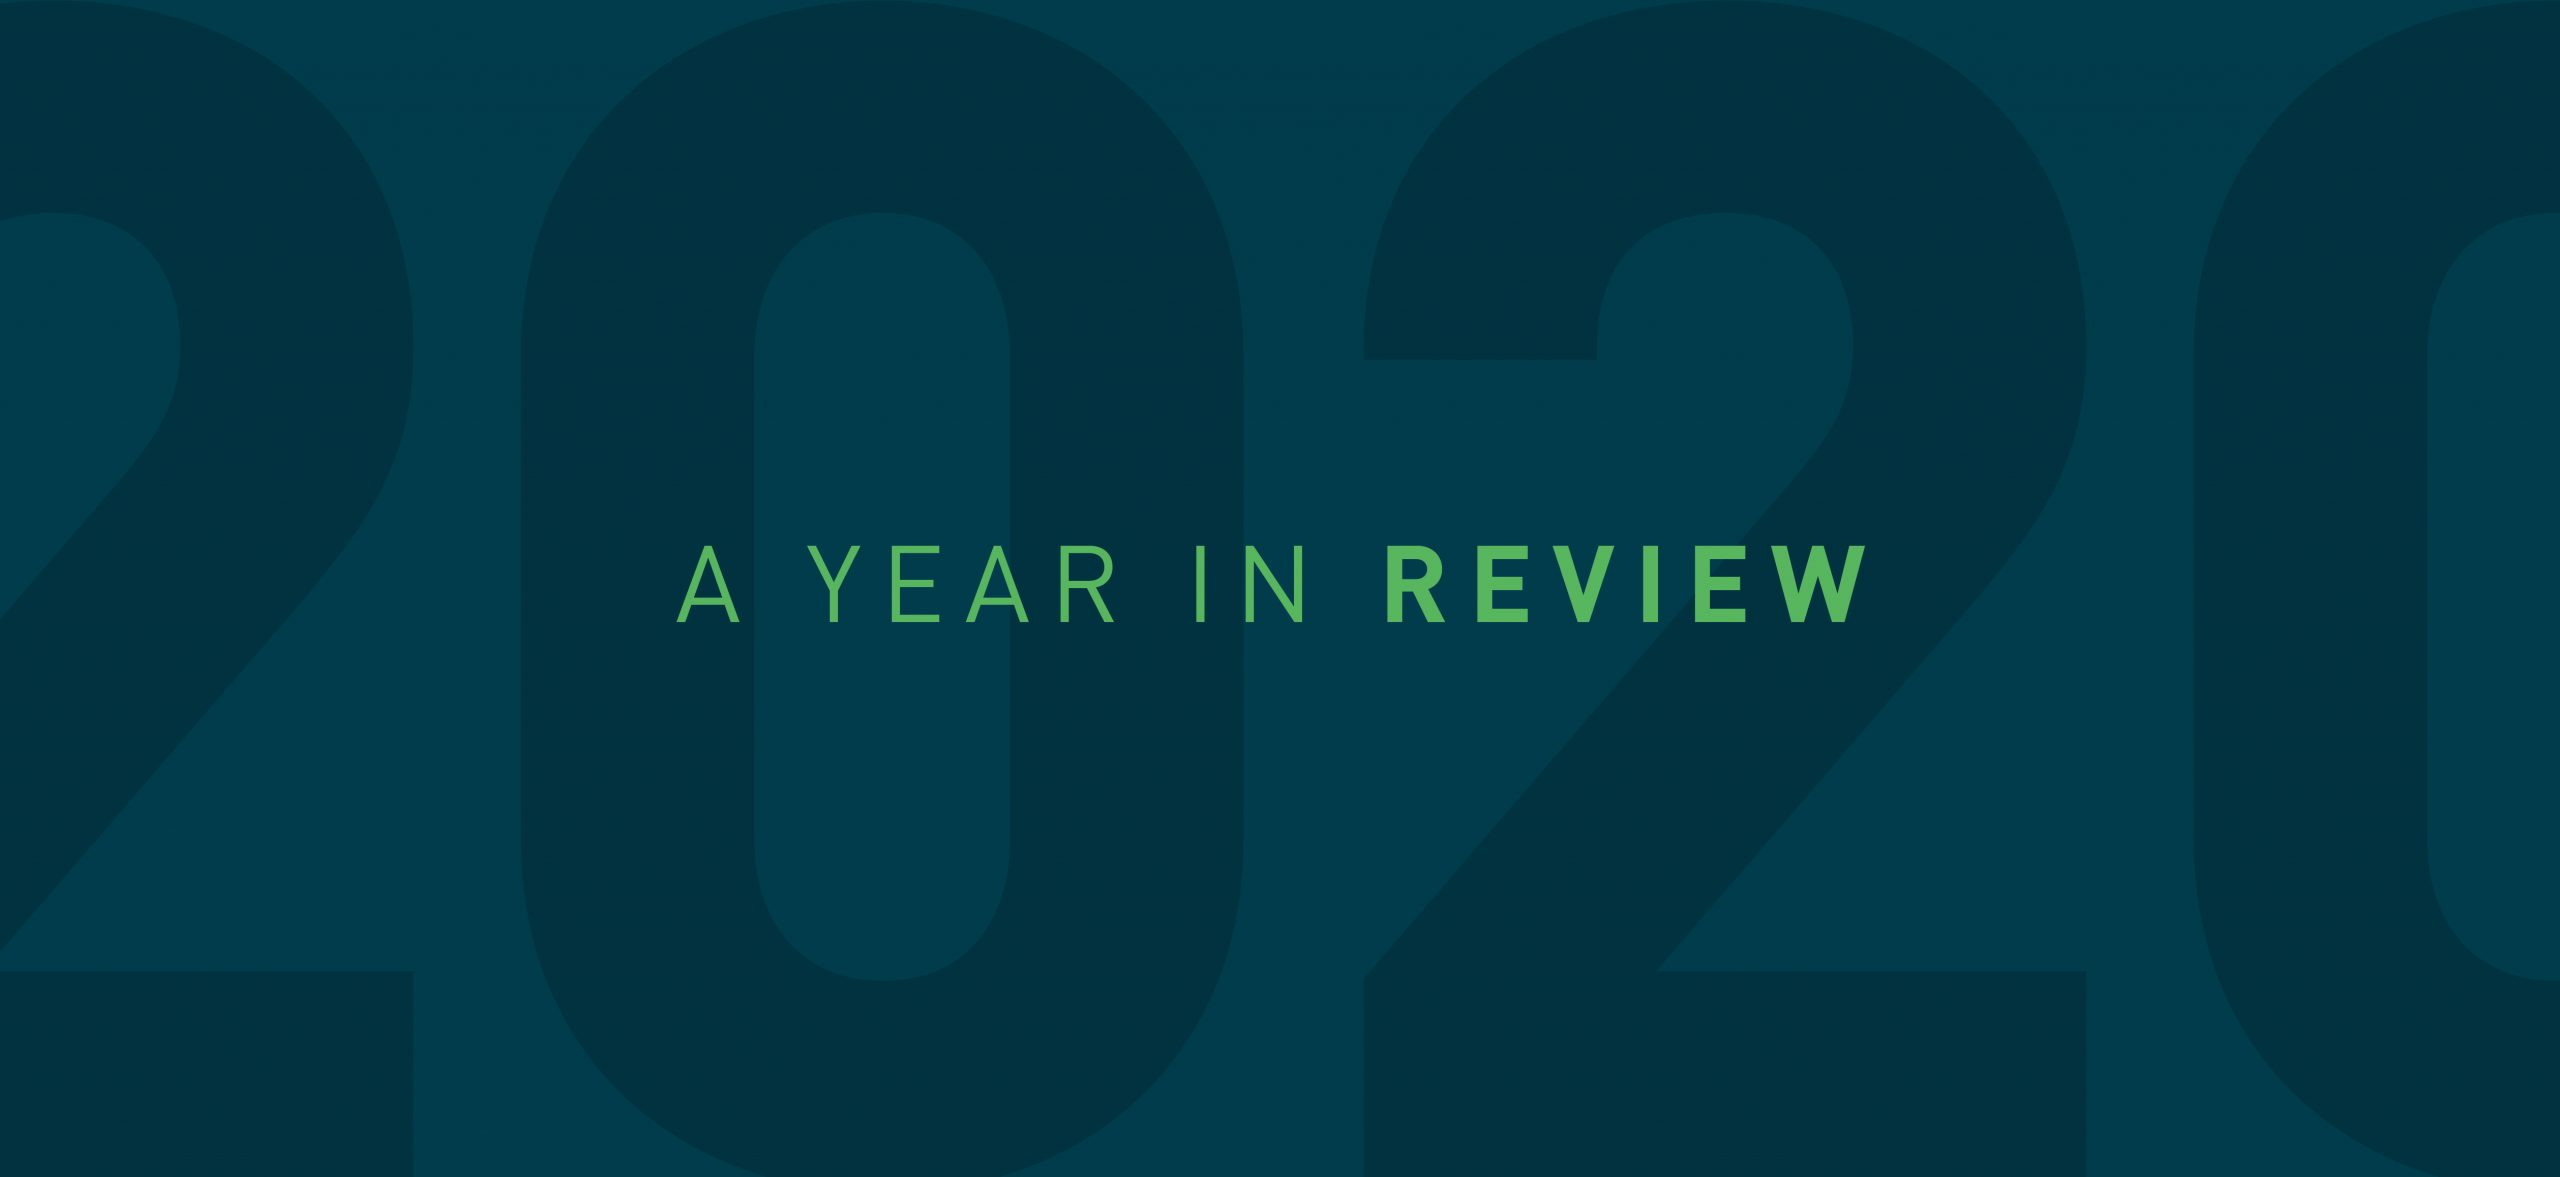 2020 Recap: A Year in Review